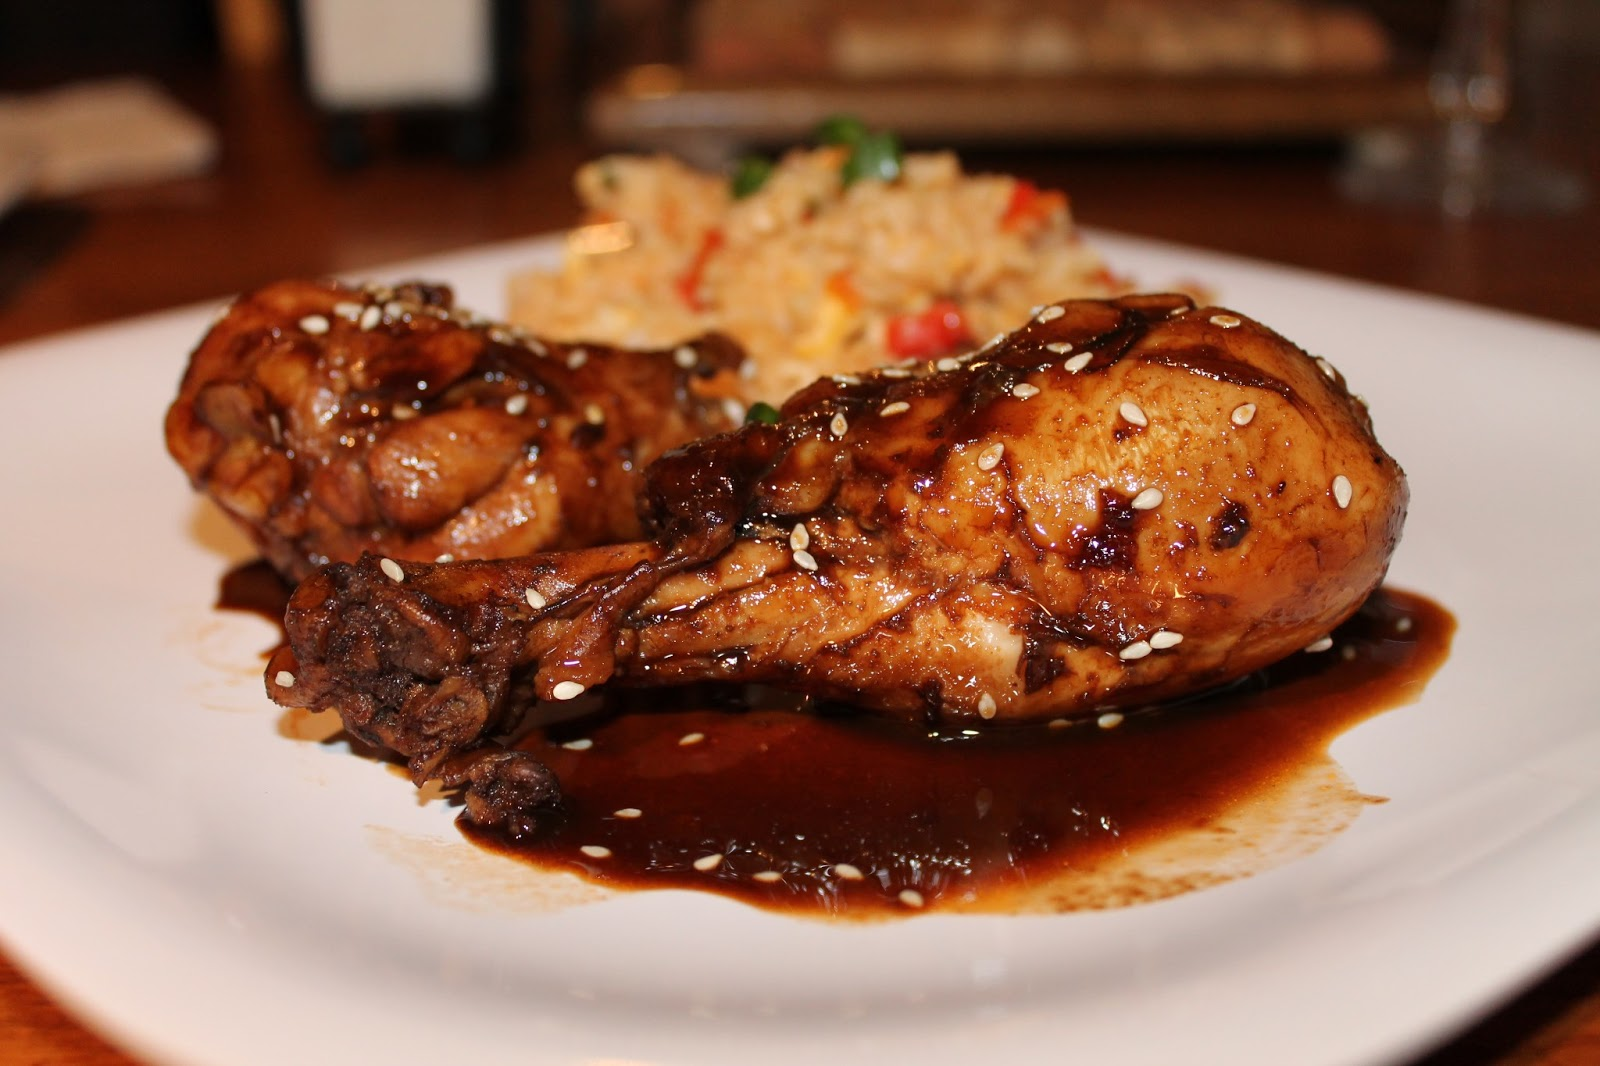 Kat's Fit Food: Asian Glazed Drumsticks with Brown Fried Rice